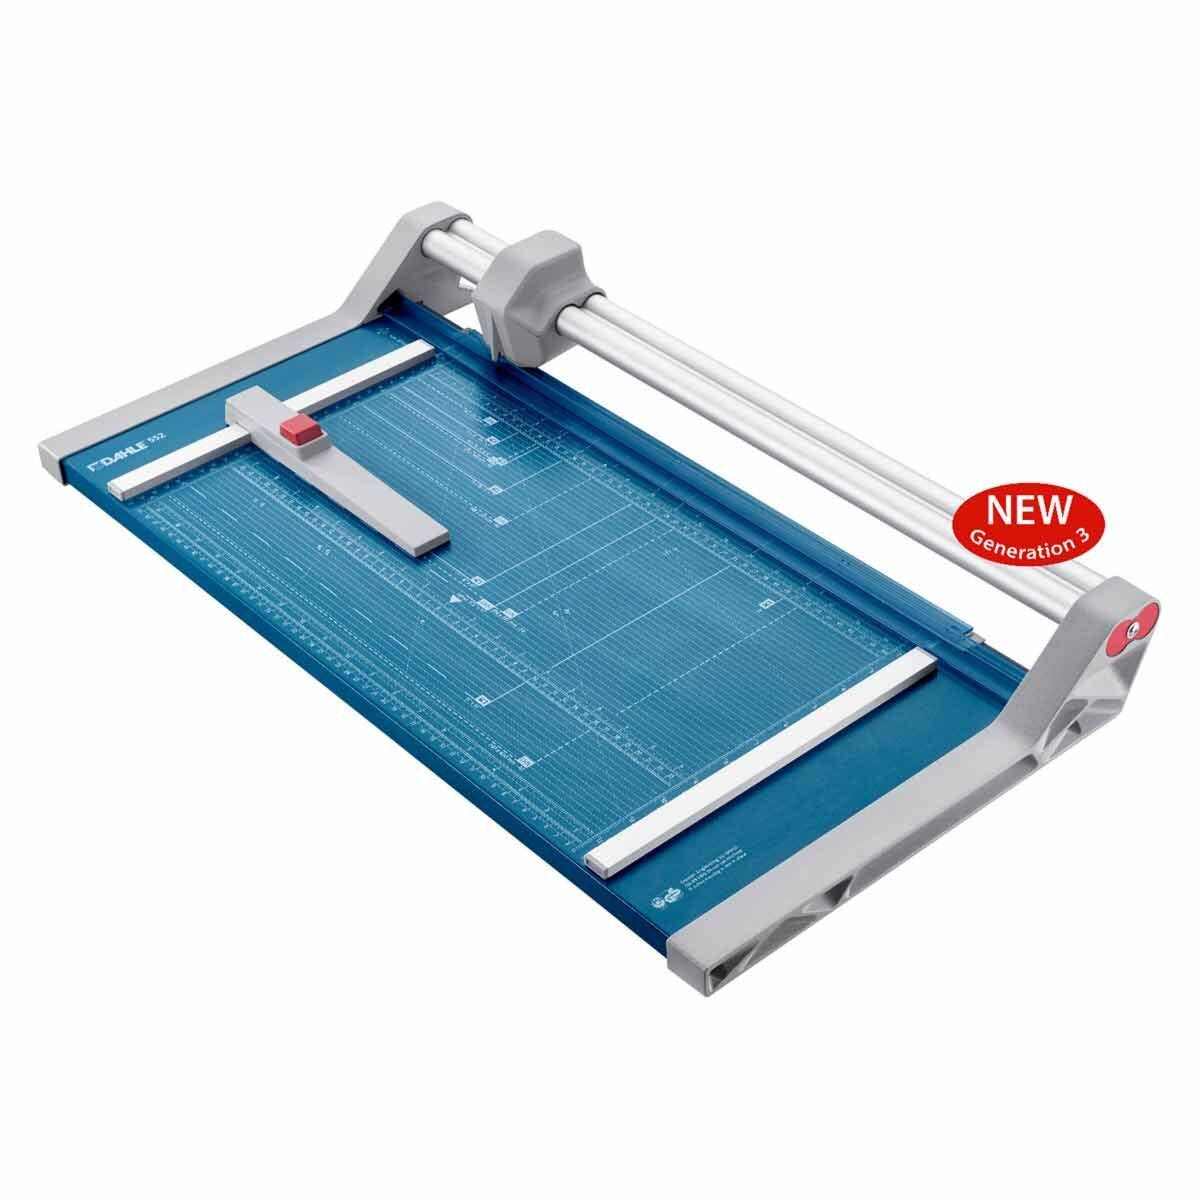 Dahle A3 Pro Rotary Trimmer 510mm Cutting Length